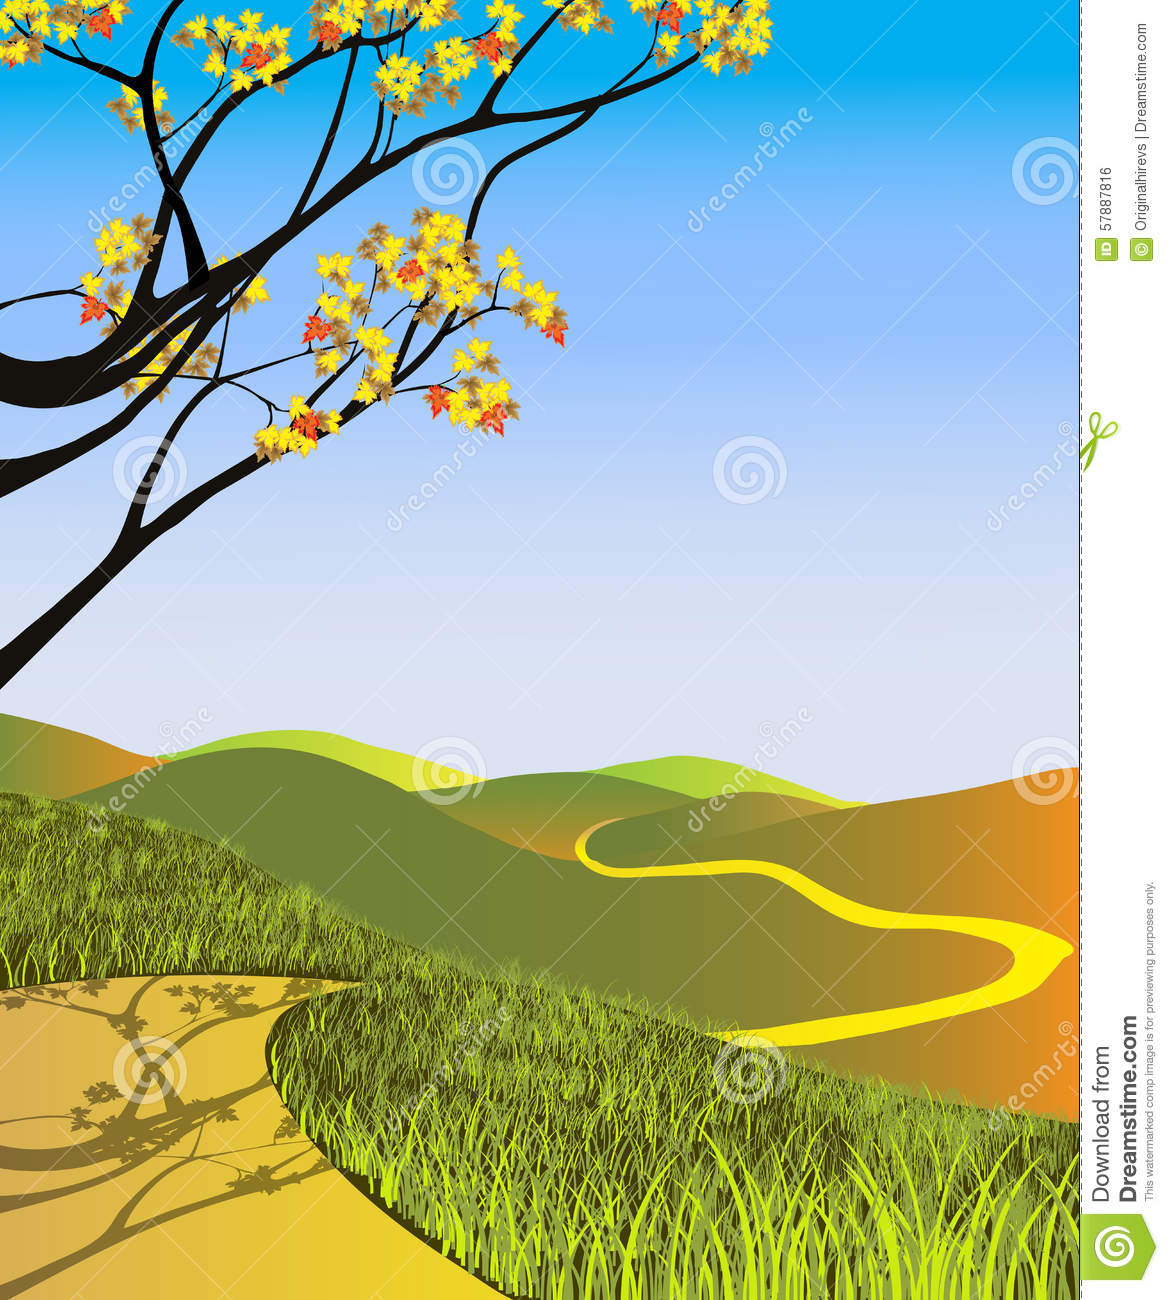 Fall Landscape Stock Vector Image 57887816